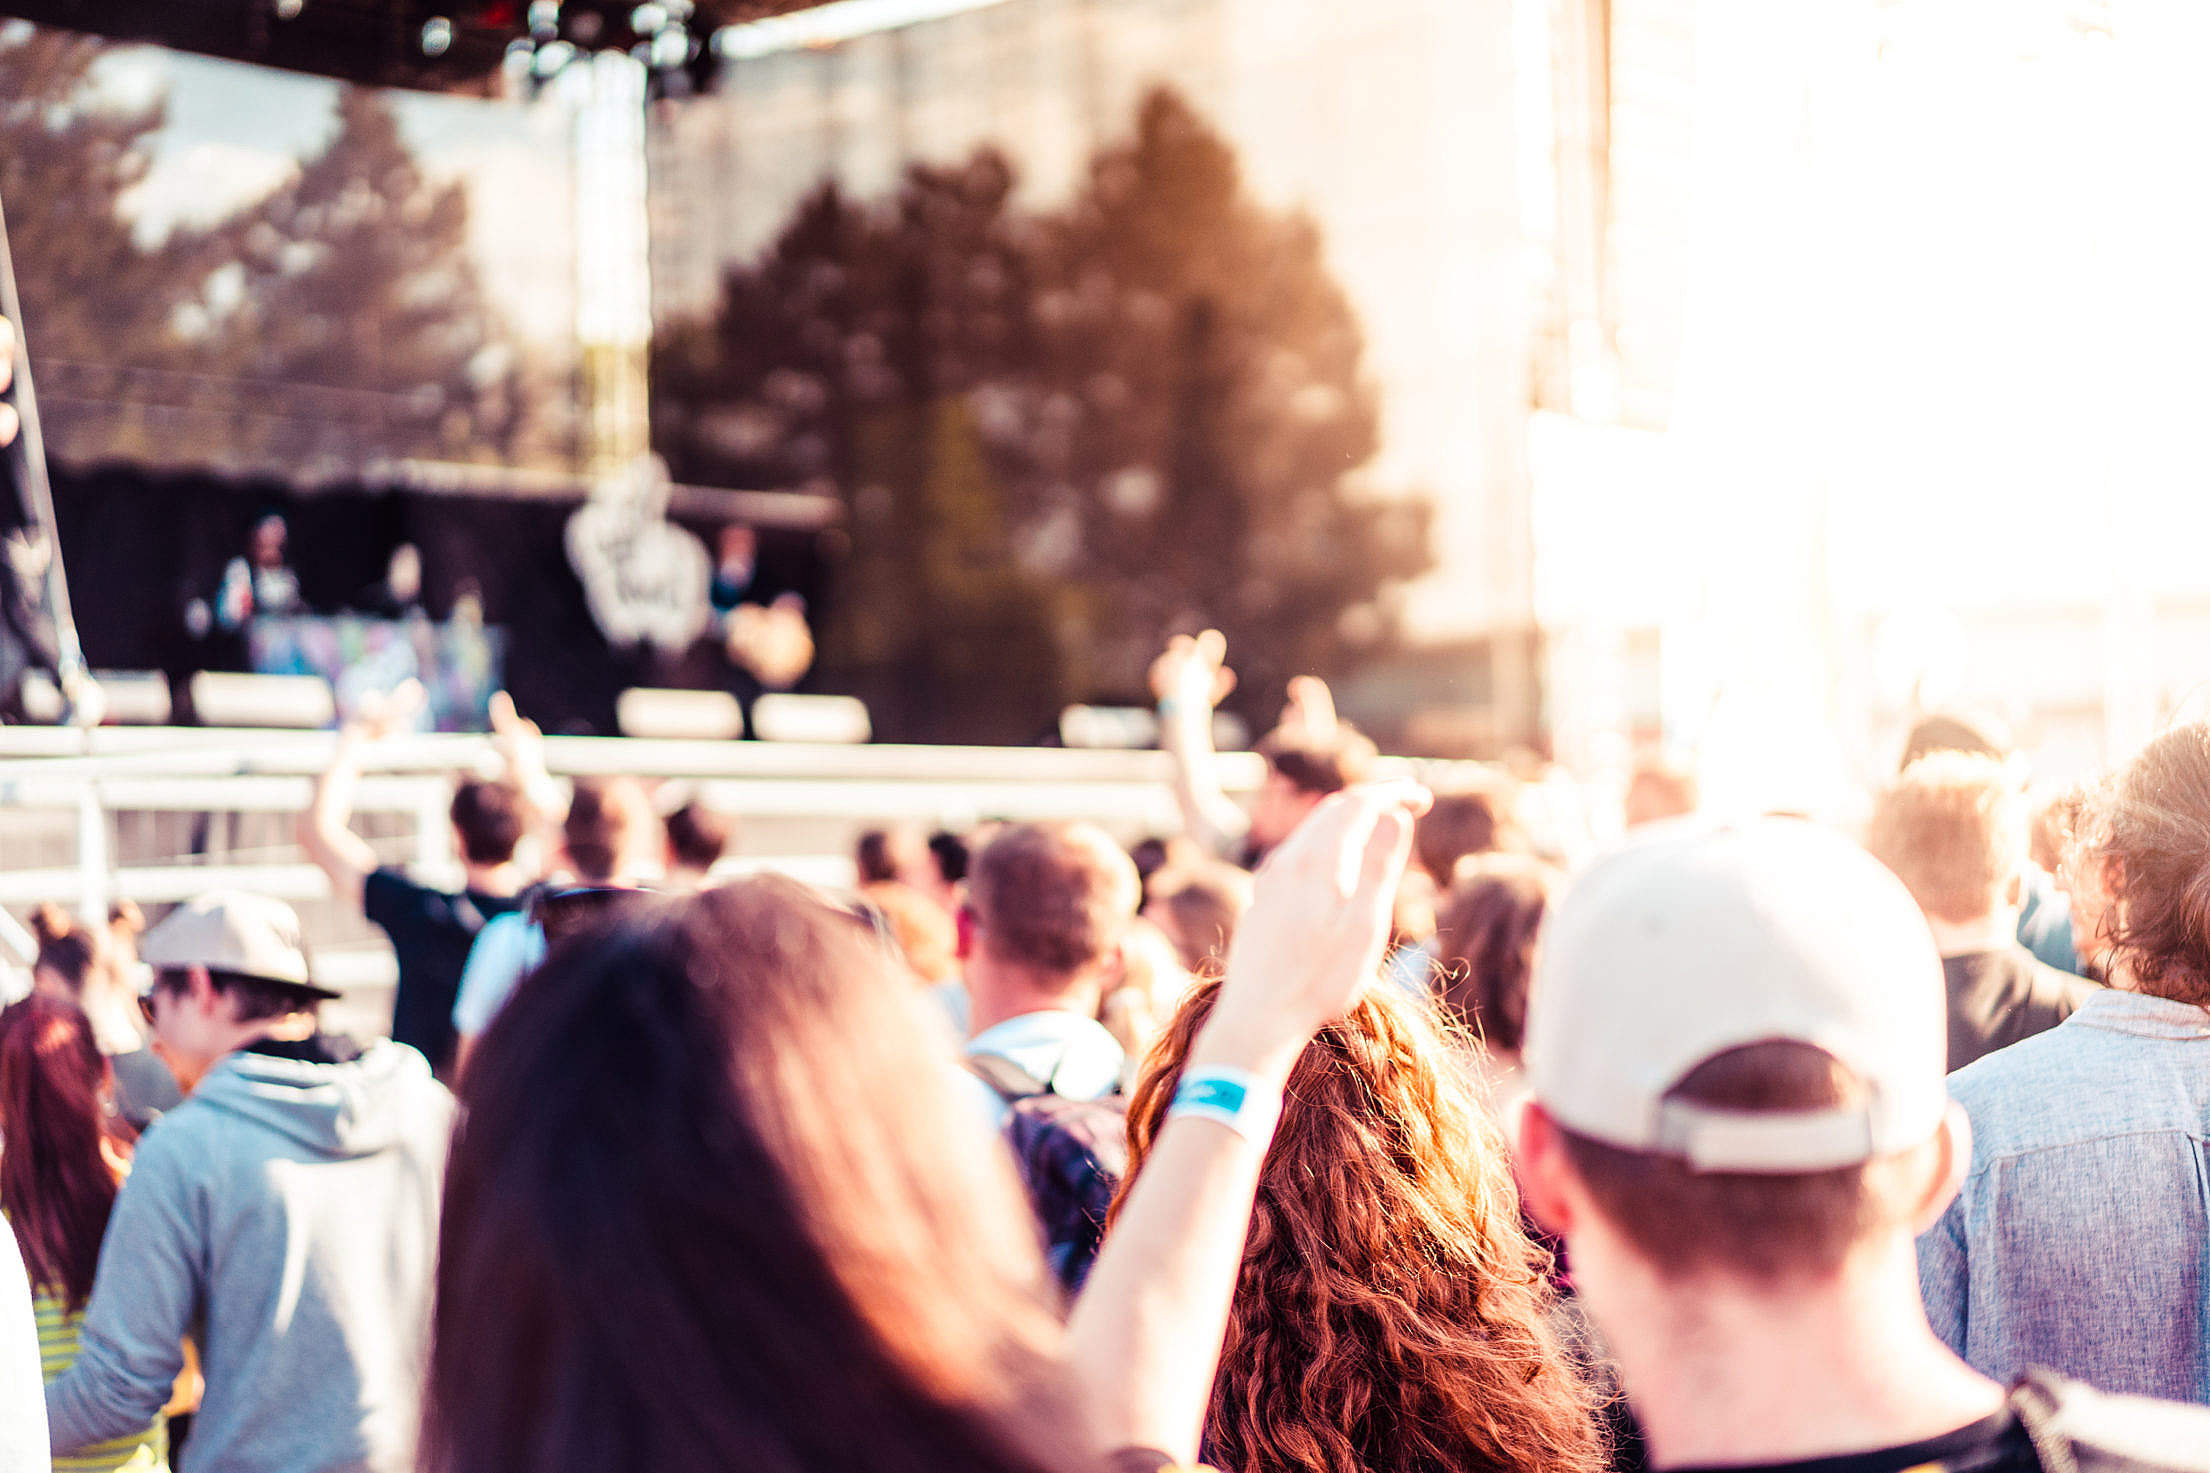 Open Air Event and Party People Free Stock Photo